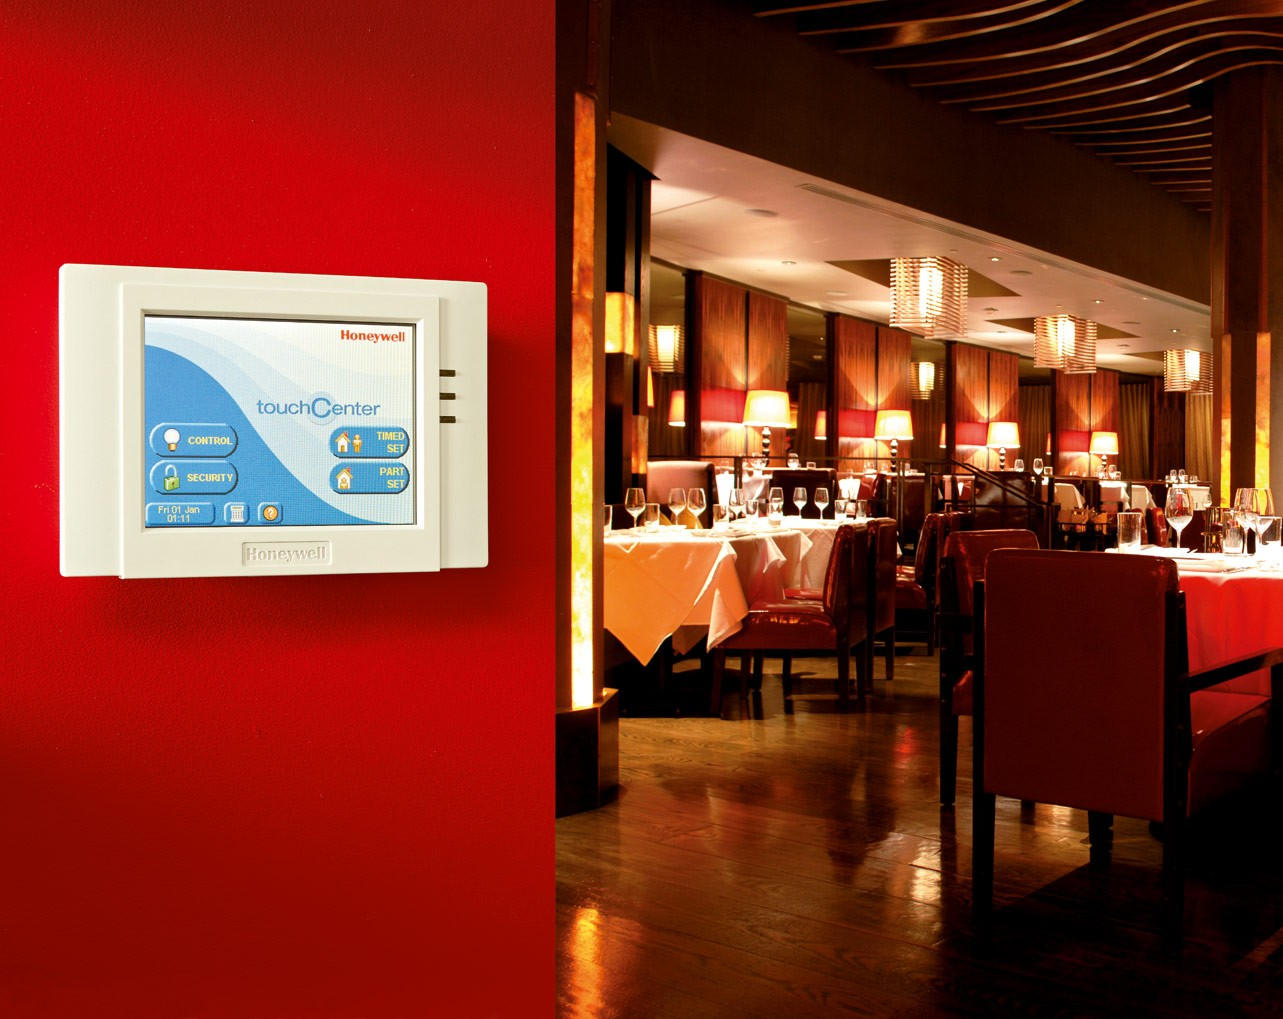 Honeywell Access Control System - Restaurant